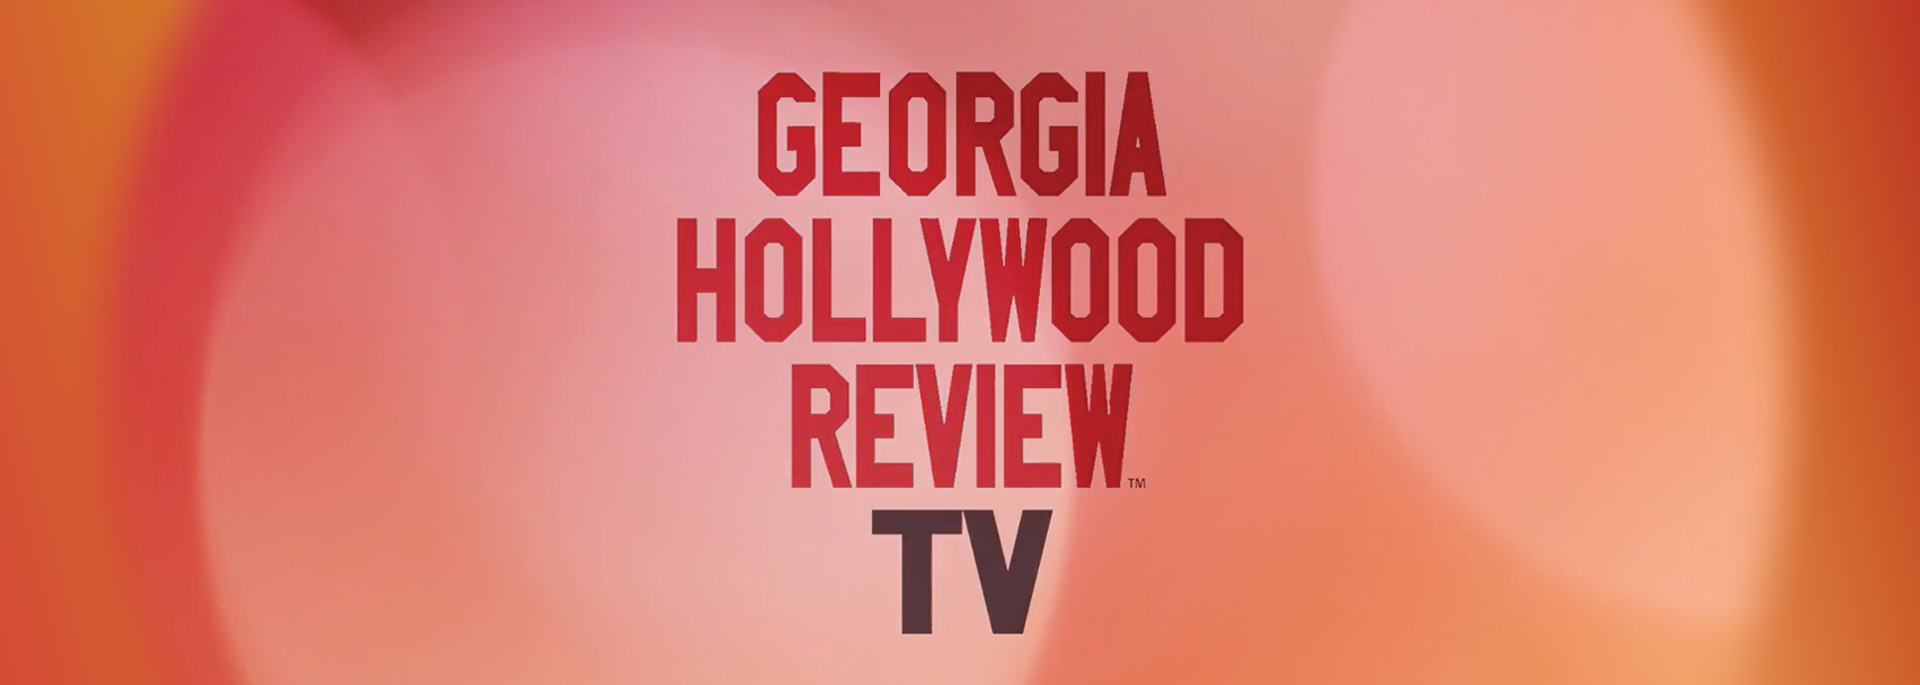 Georgia Hollywood Review TV channel